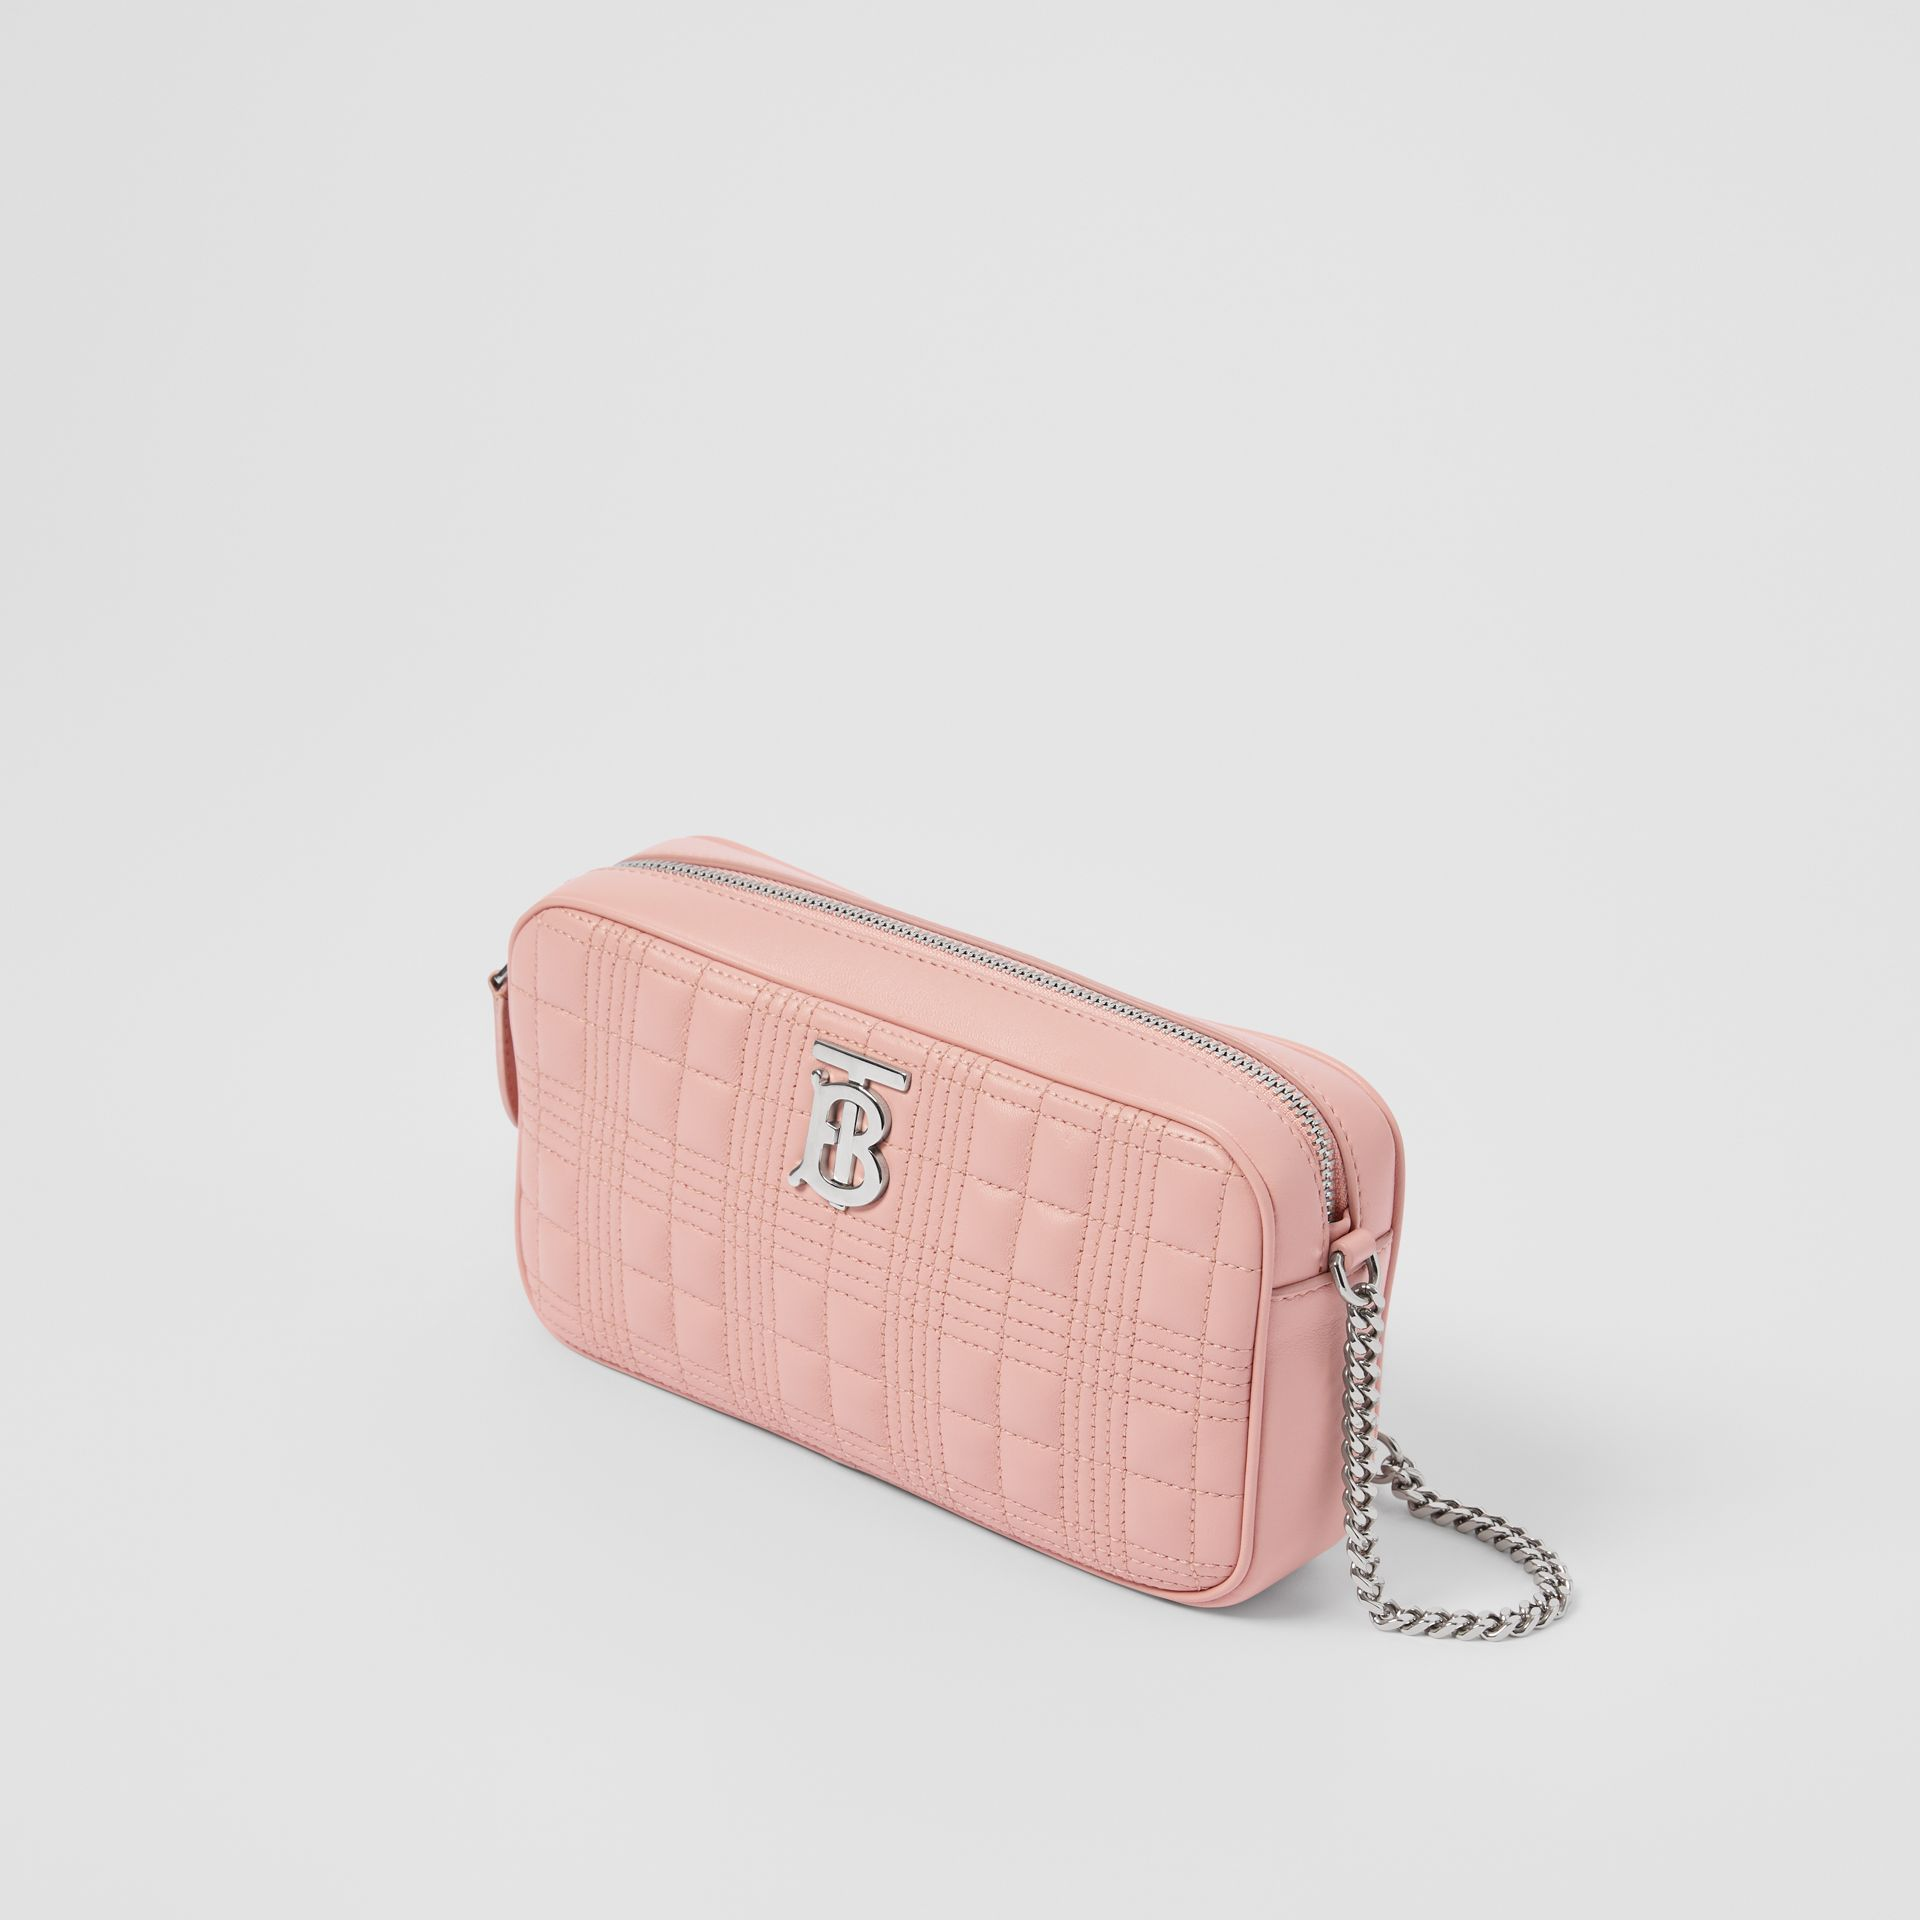 Quilted Lambskin Camera Bag in Blush Pink - Women | Burberry - gallery image 2